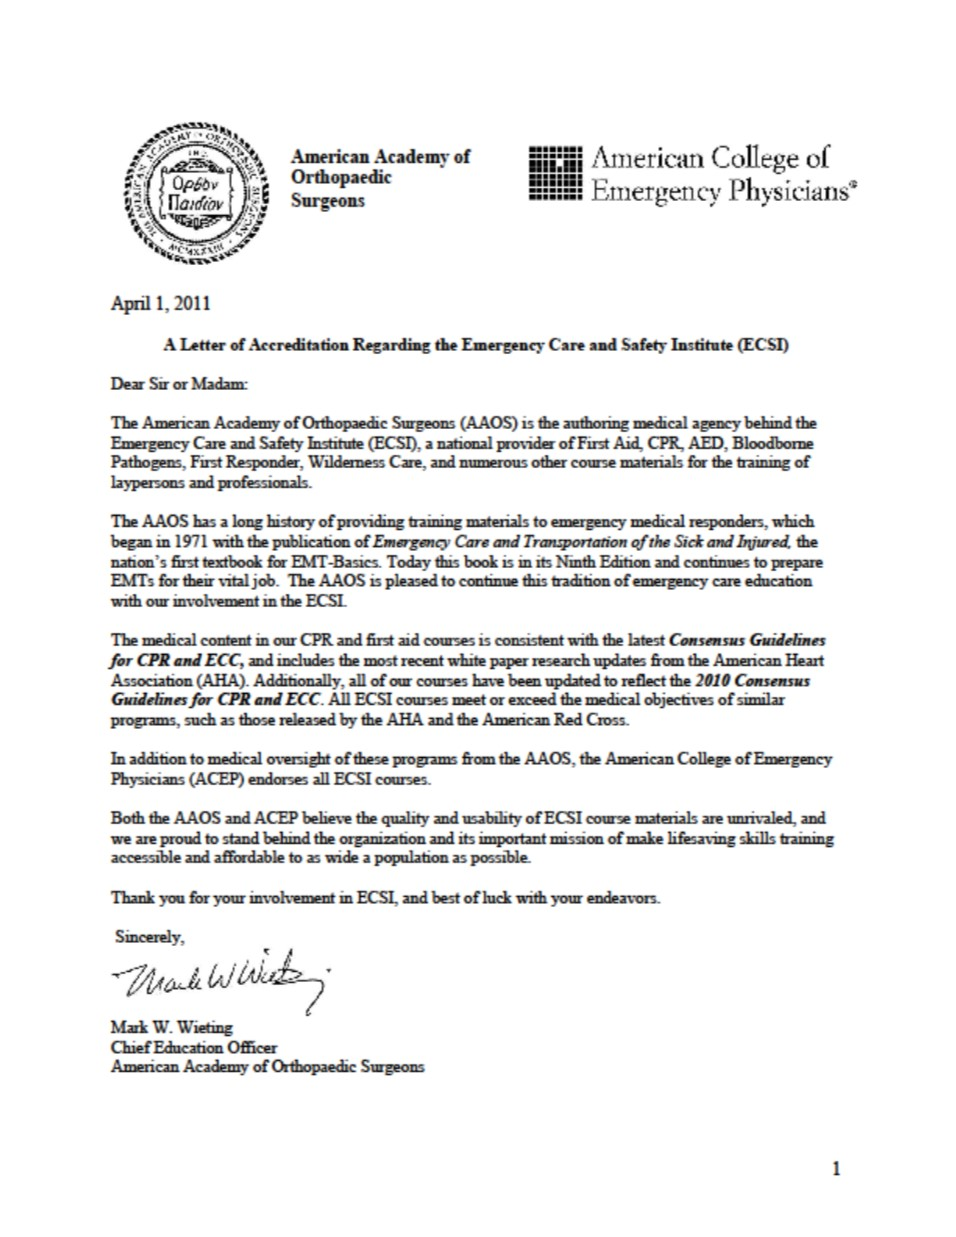 American Academy of Orthopaedic Surgeons (AAOS) Letter - AG